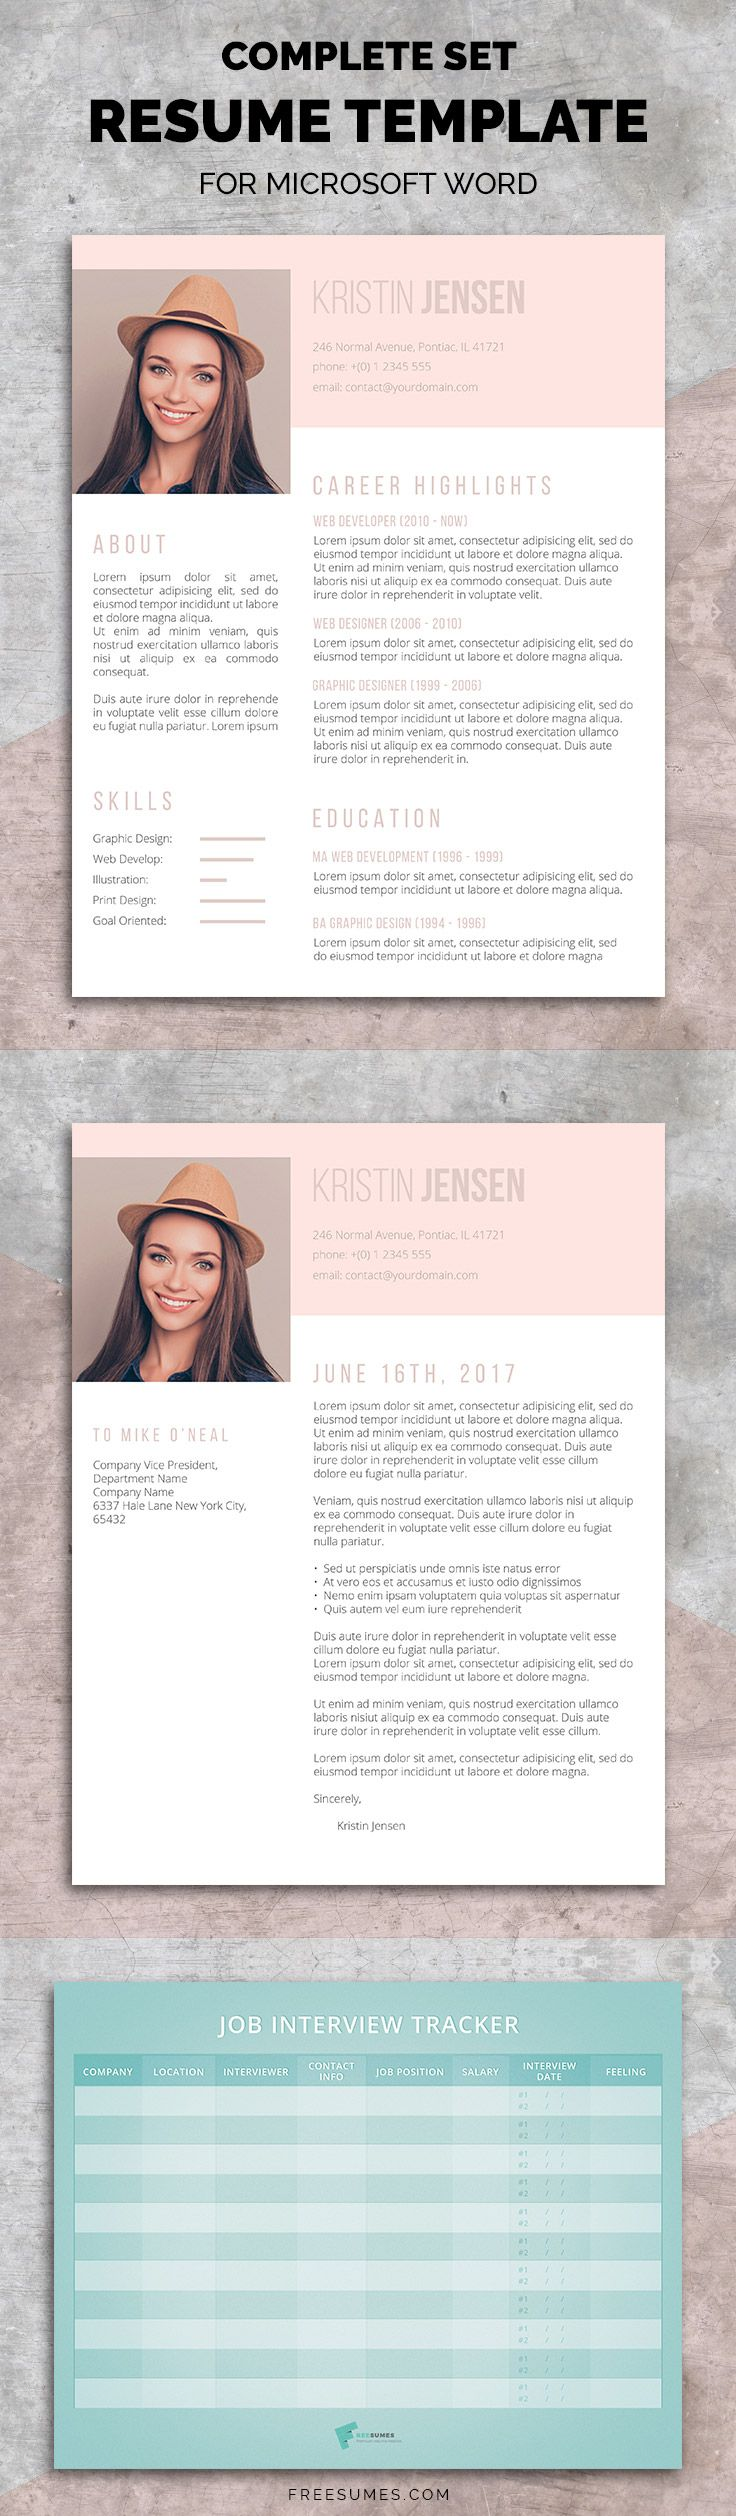 Sugar  Spice Premium Resume Set Lets Your Personality Shine